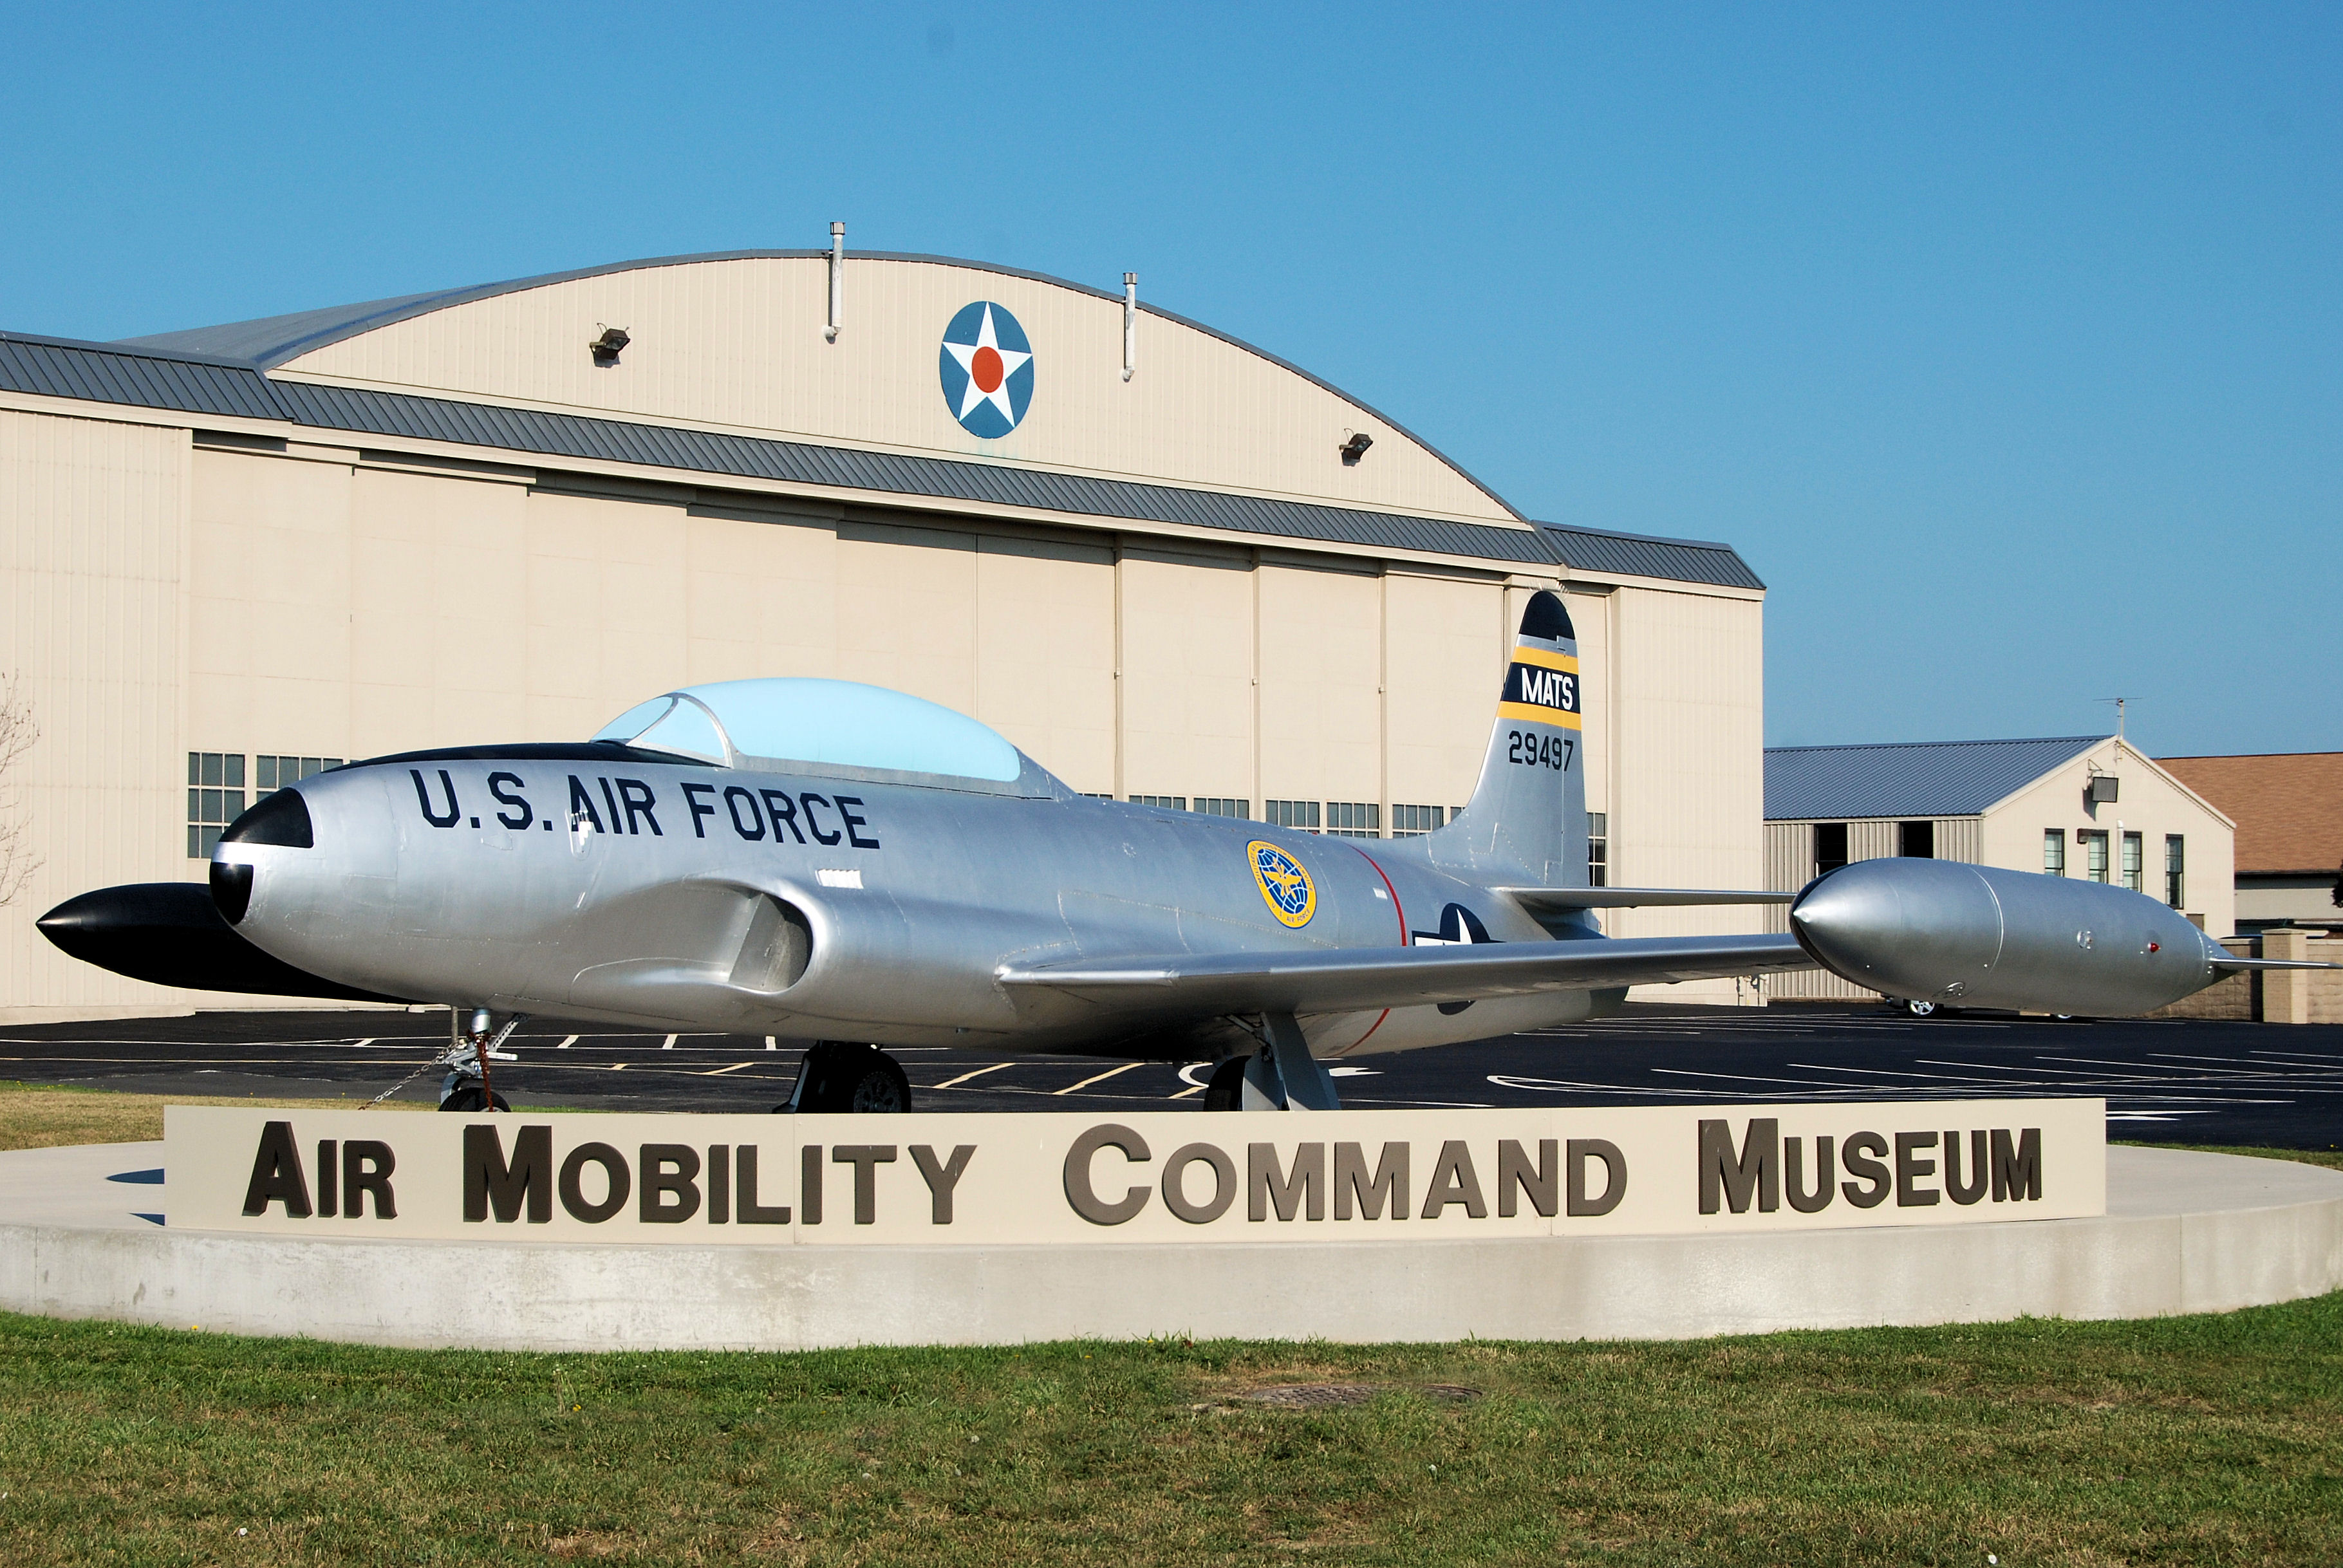 T 33a Shooting Star Air Mobility Command Museum